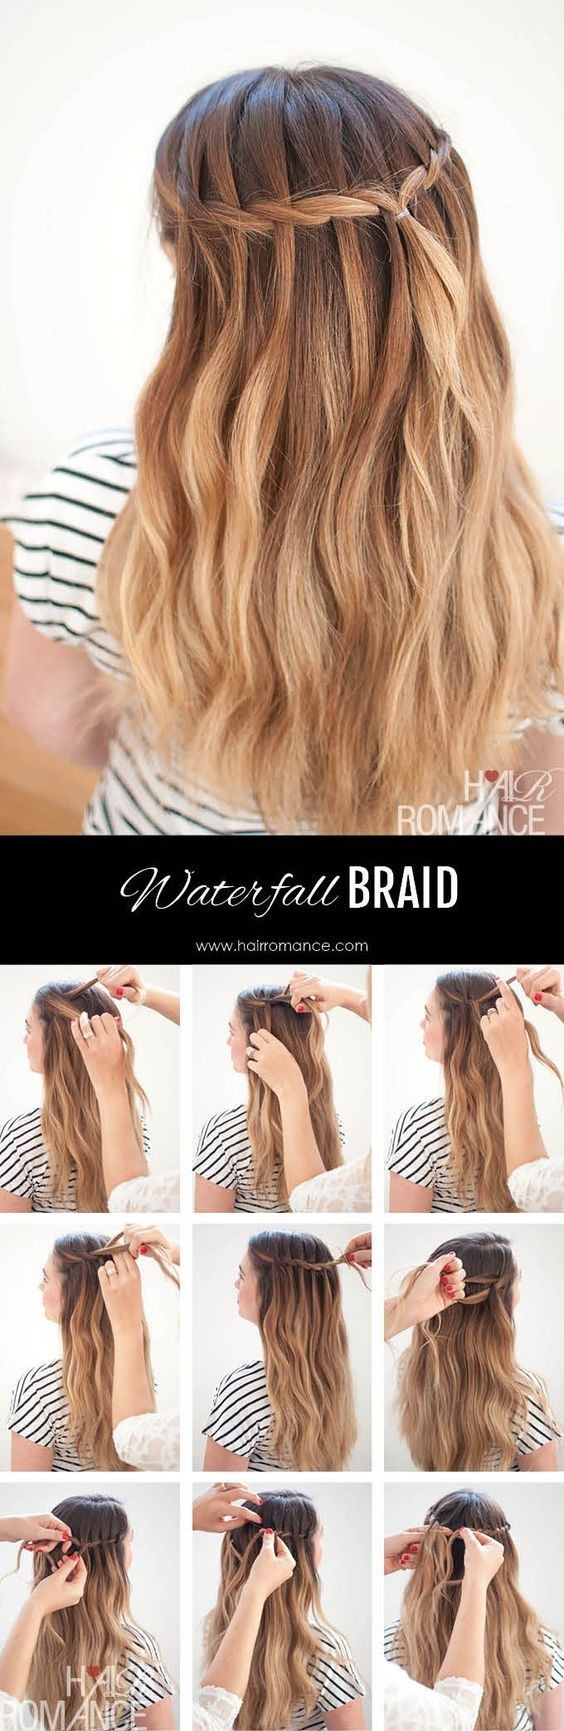 Wasserfall Mermaid Braid Tutorial für langes Haar